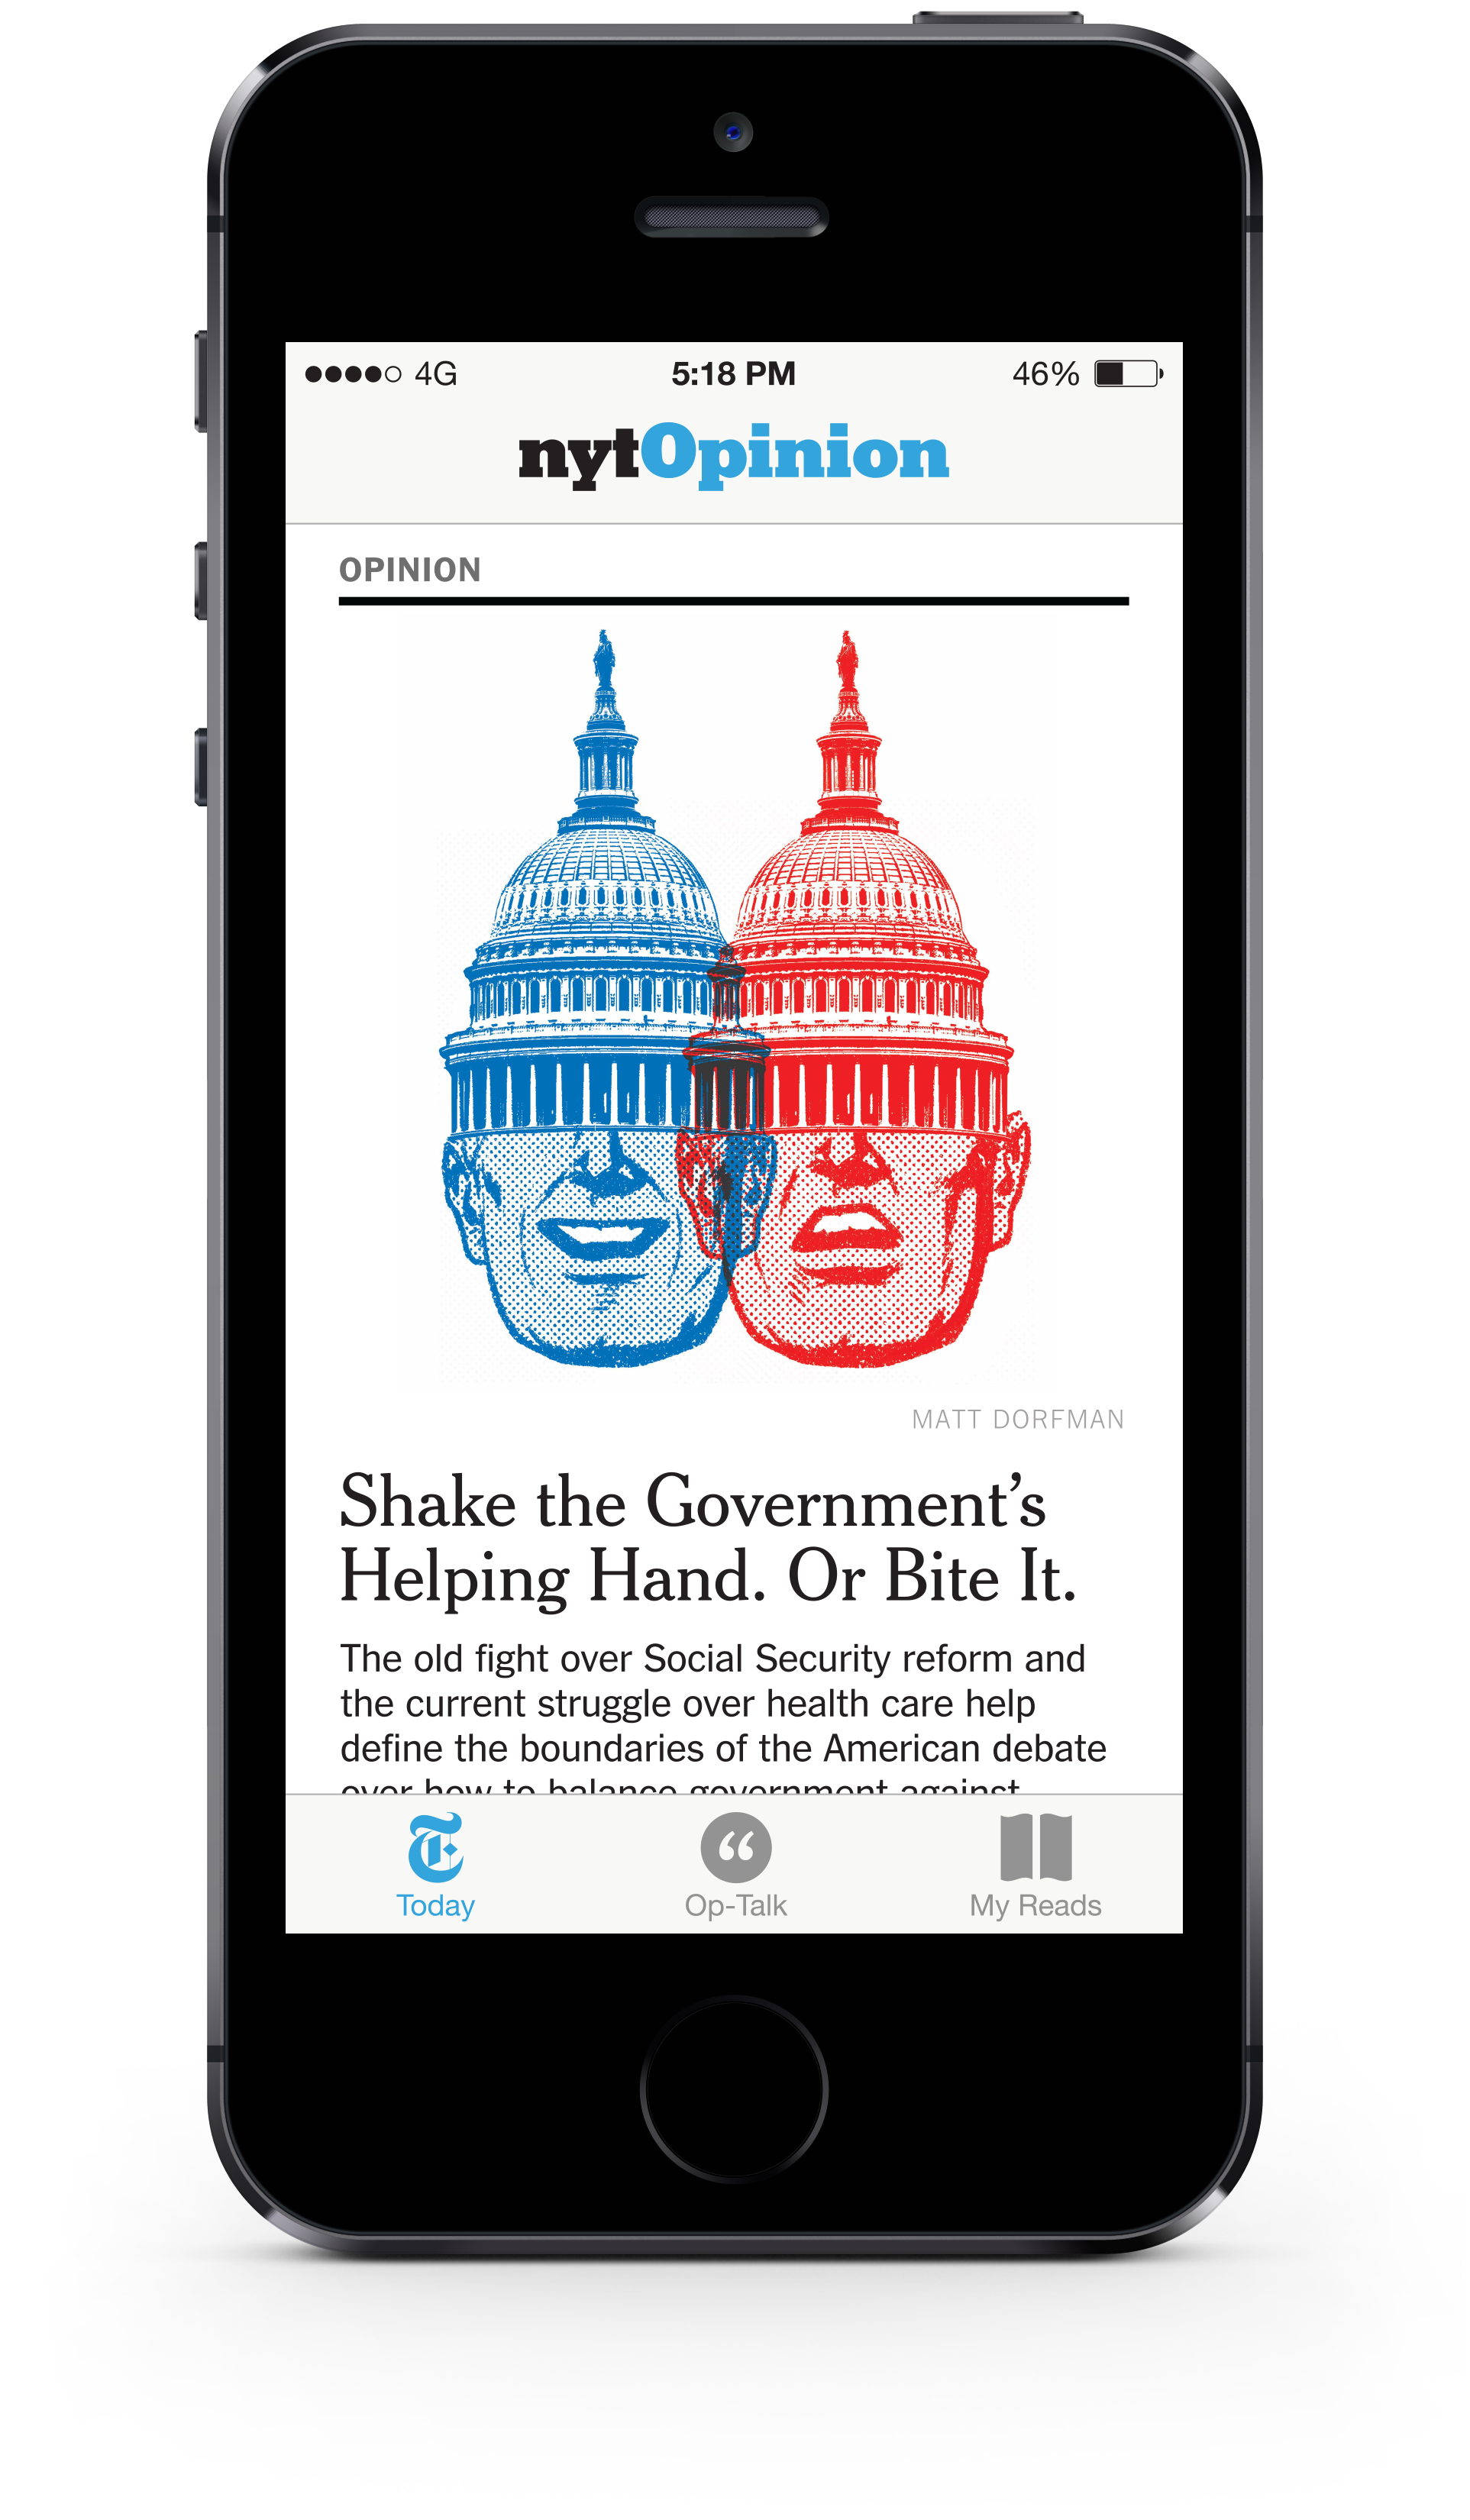 NYT-Opinion-Smartphone-Asset